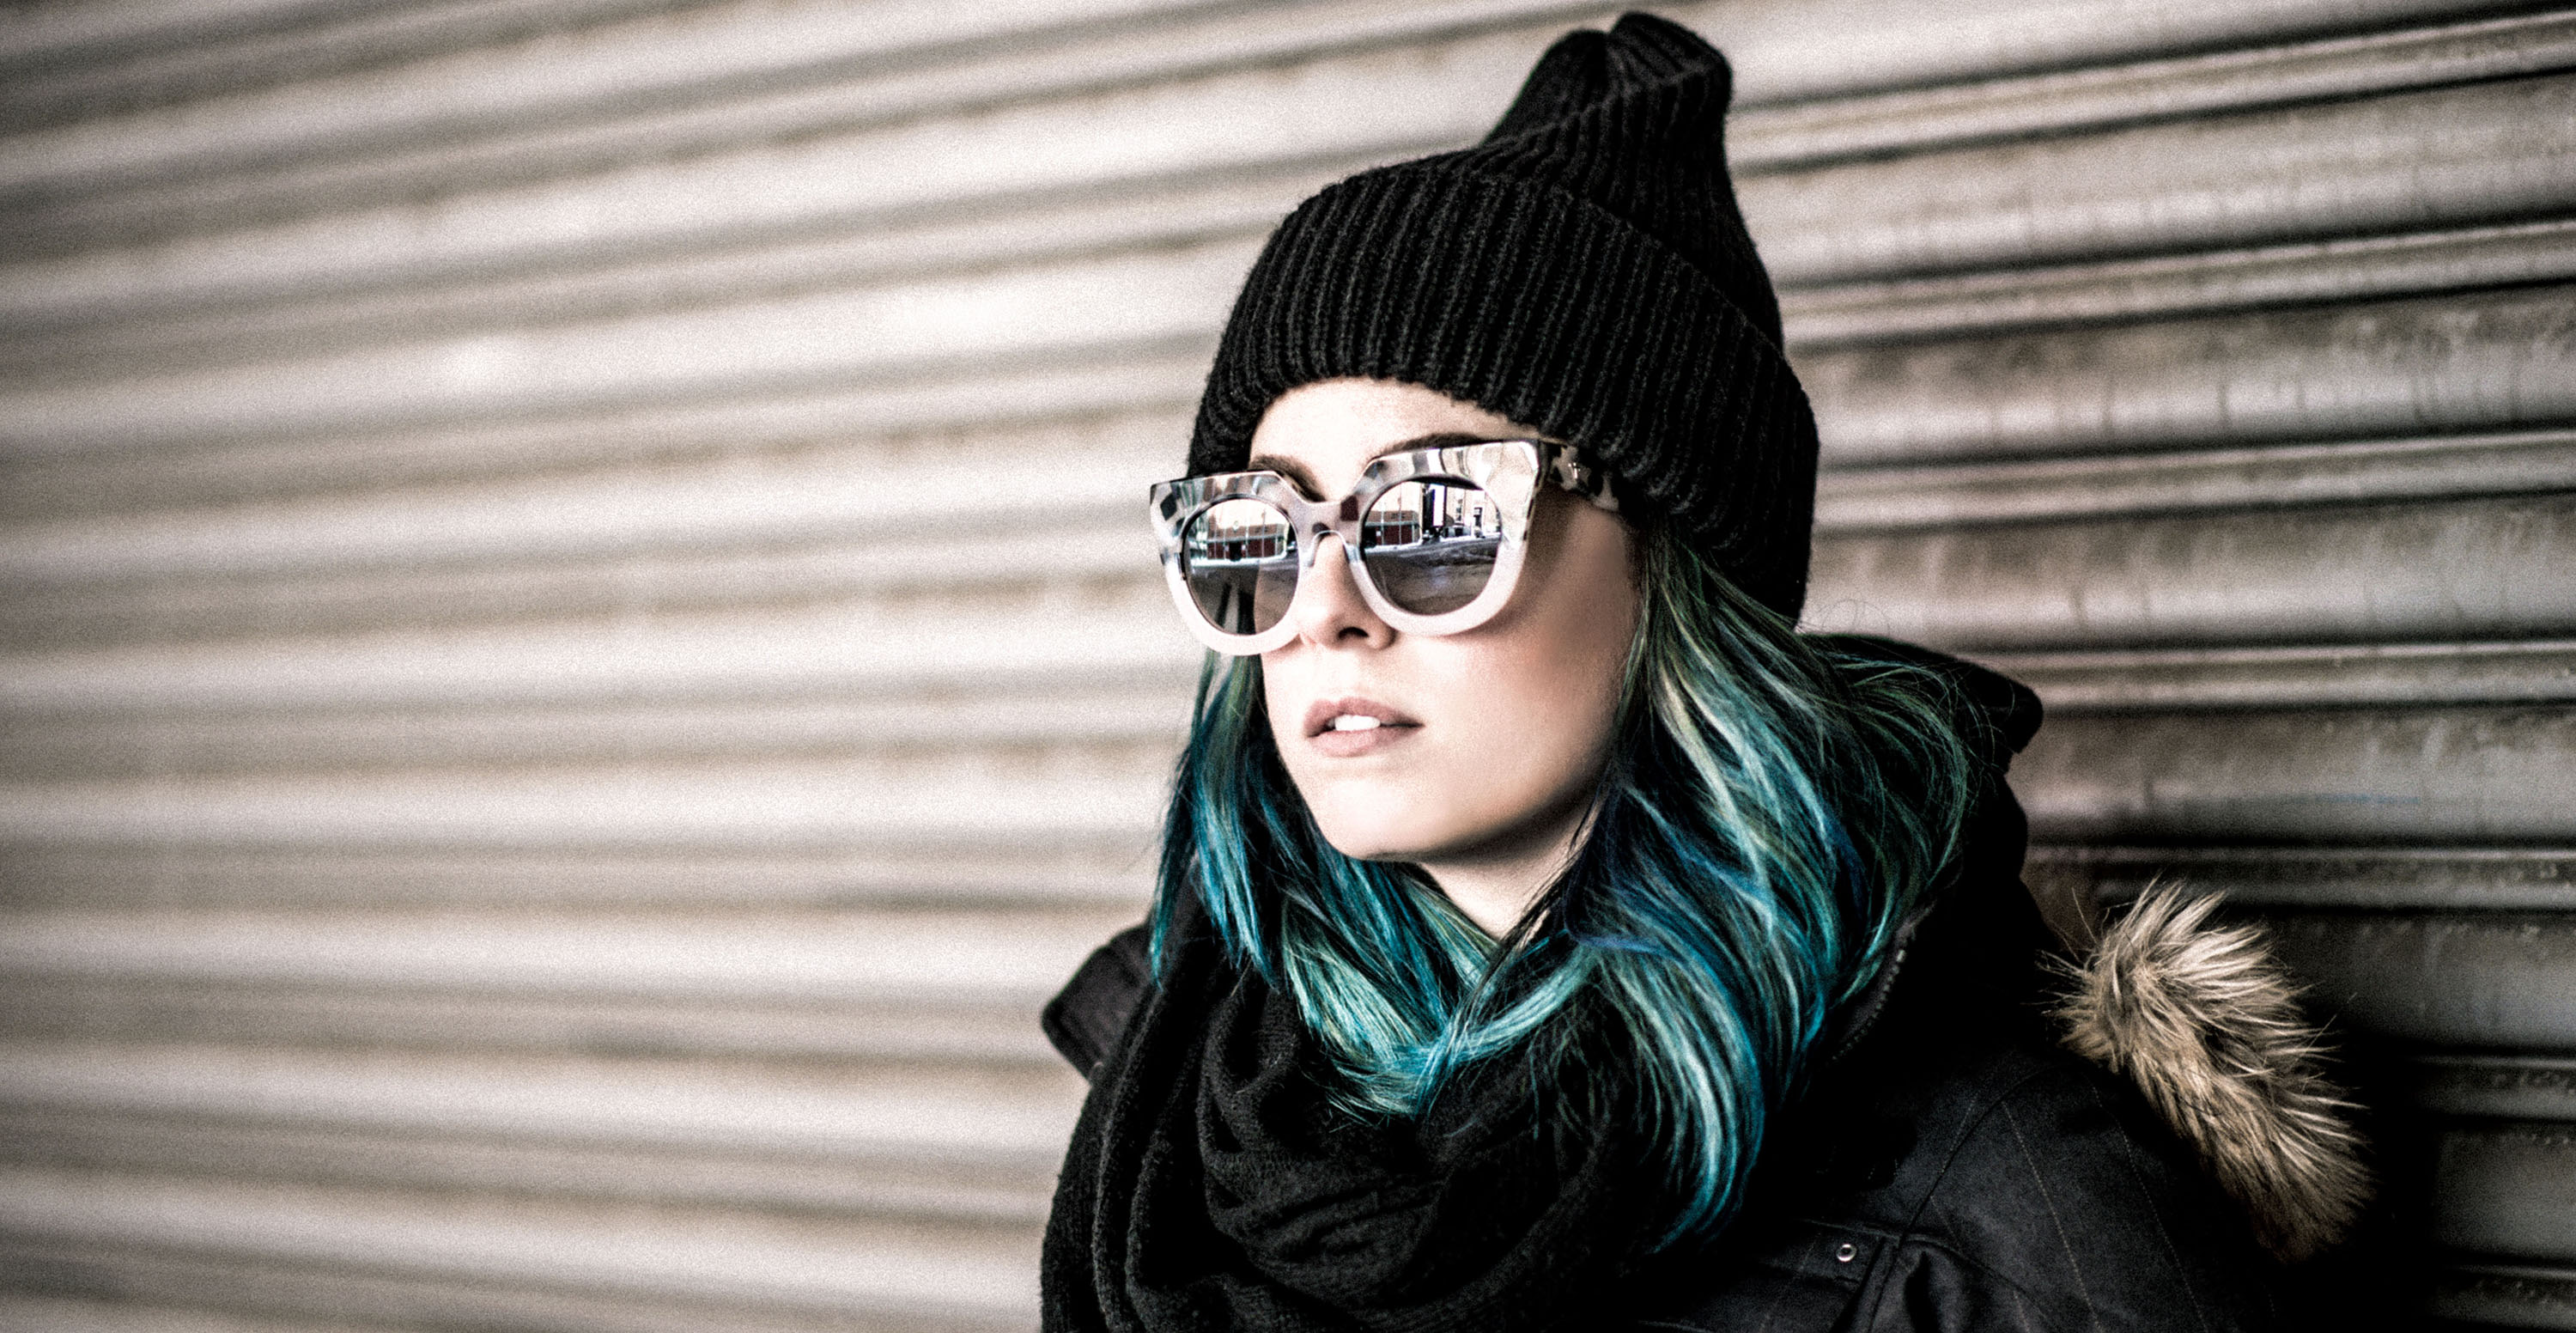 girl, lady, hat, blue, hair, sunglasses, cold, coat, garage door